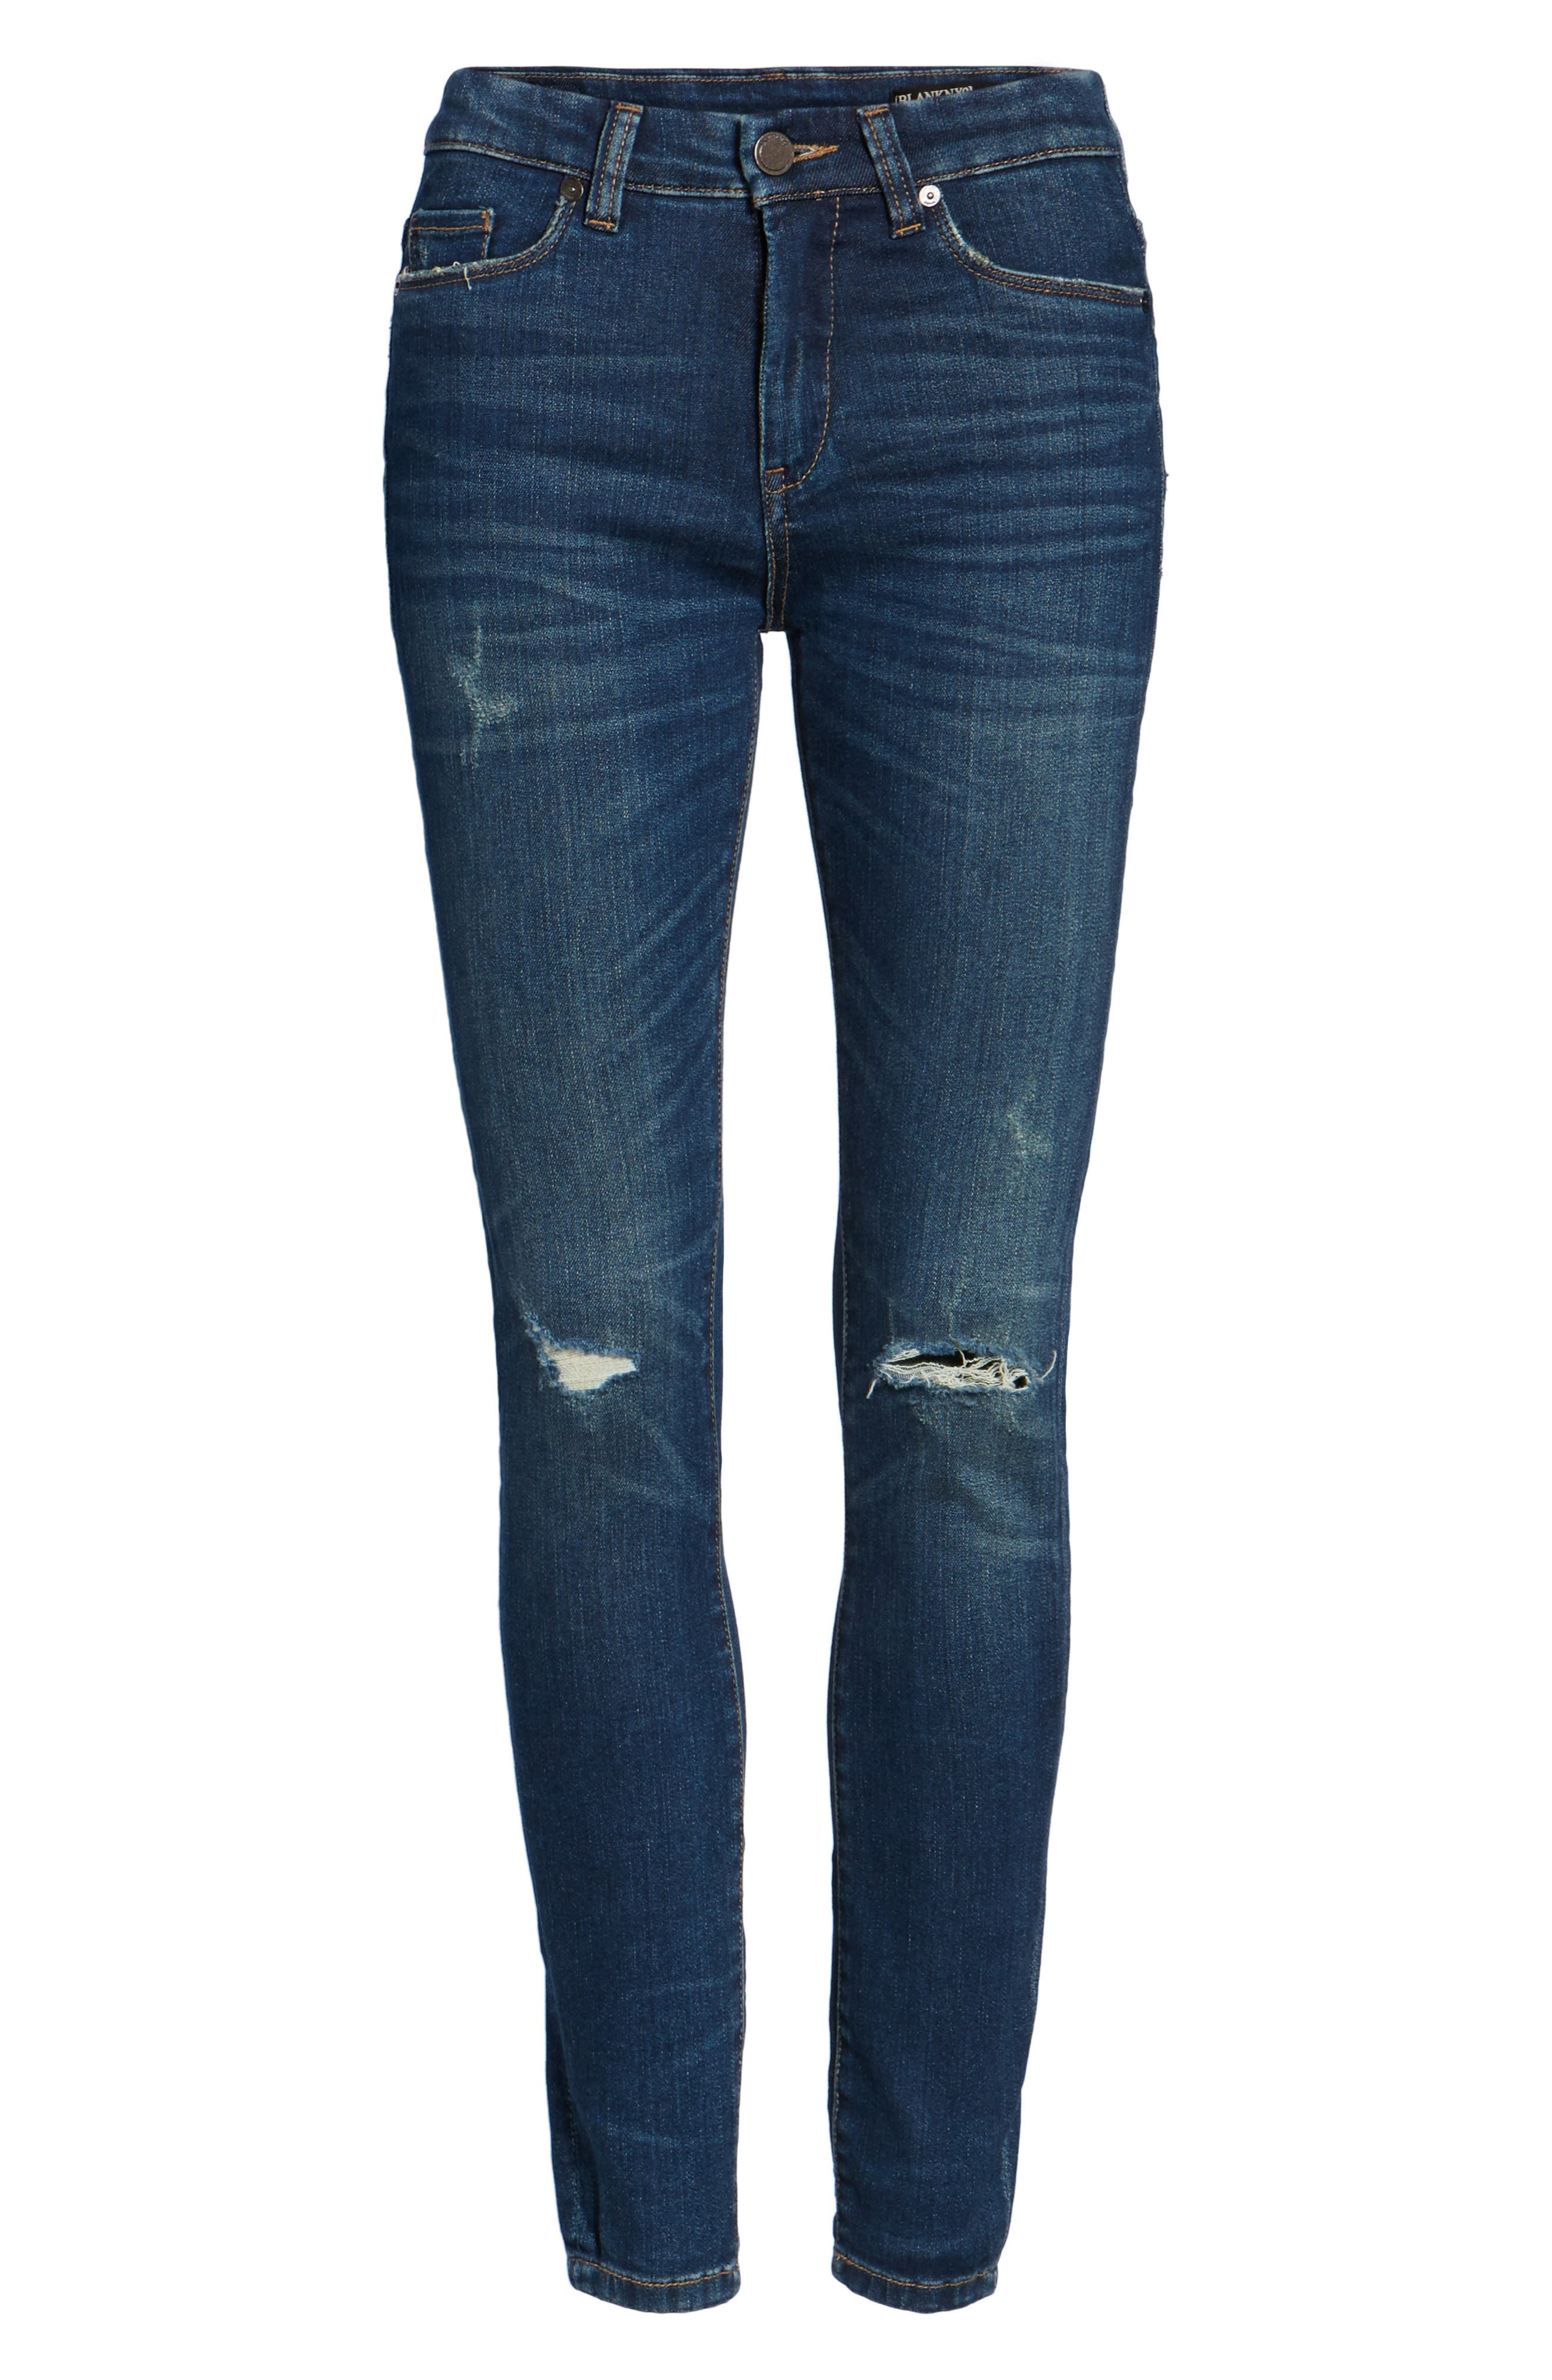 Ripped Mid Rise Skinny Ankle Jeans,                             Alternate thumbnail 7, color,                             420